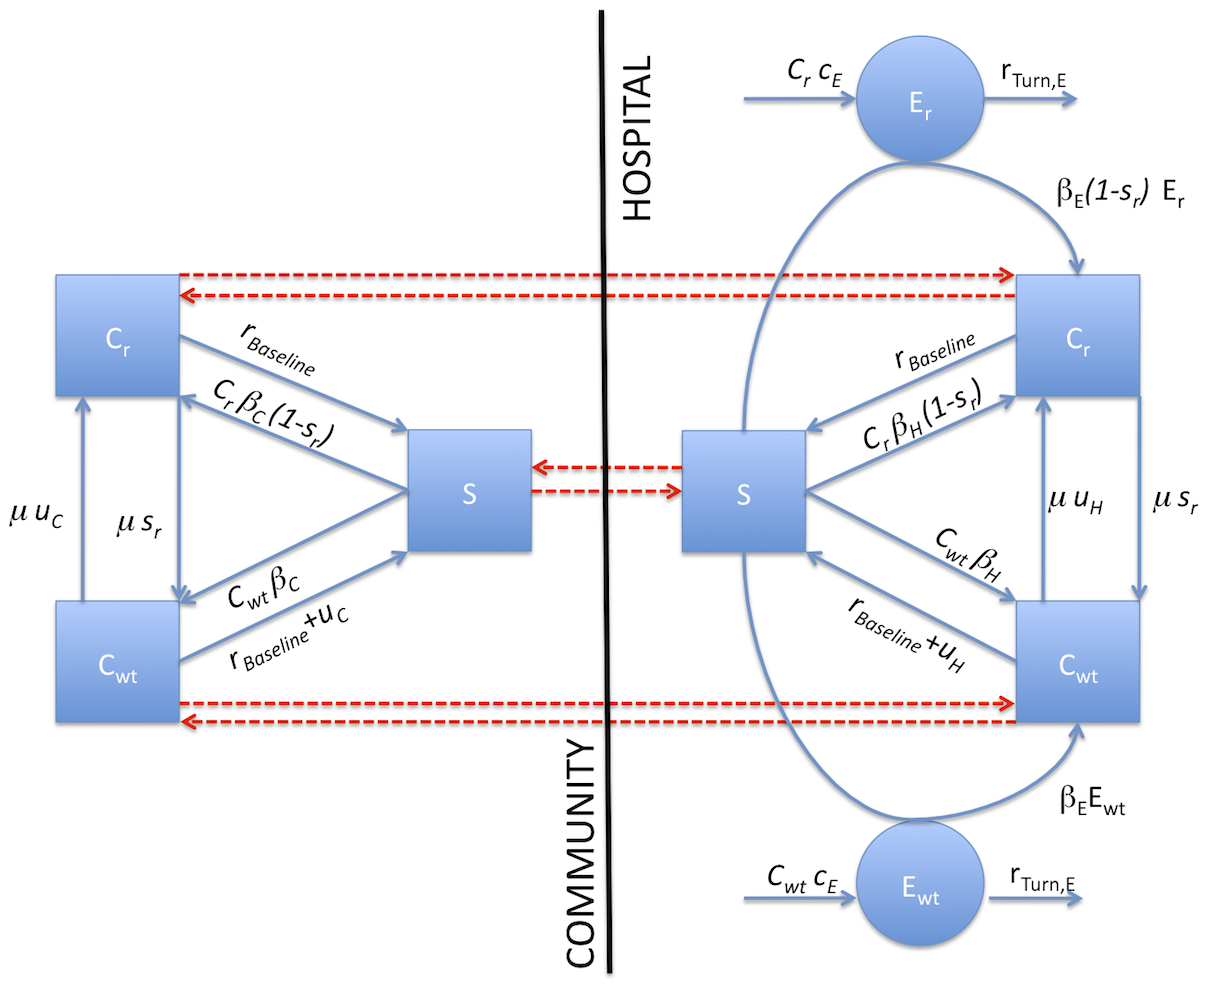 Flow chart of compartmental model in the simplest case (only one hospital and one community).